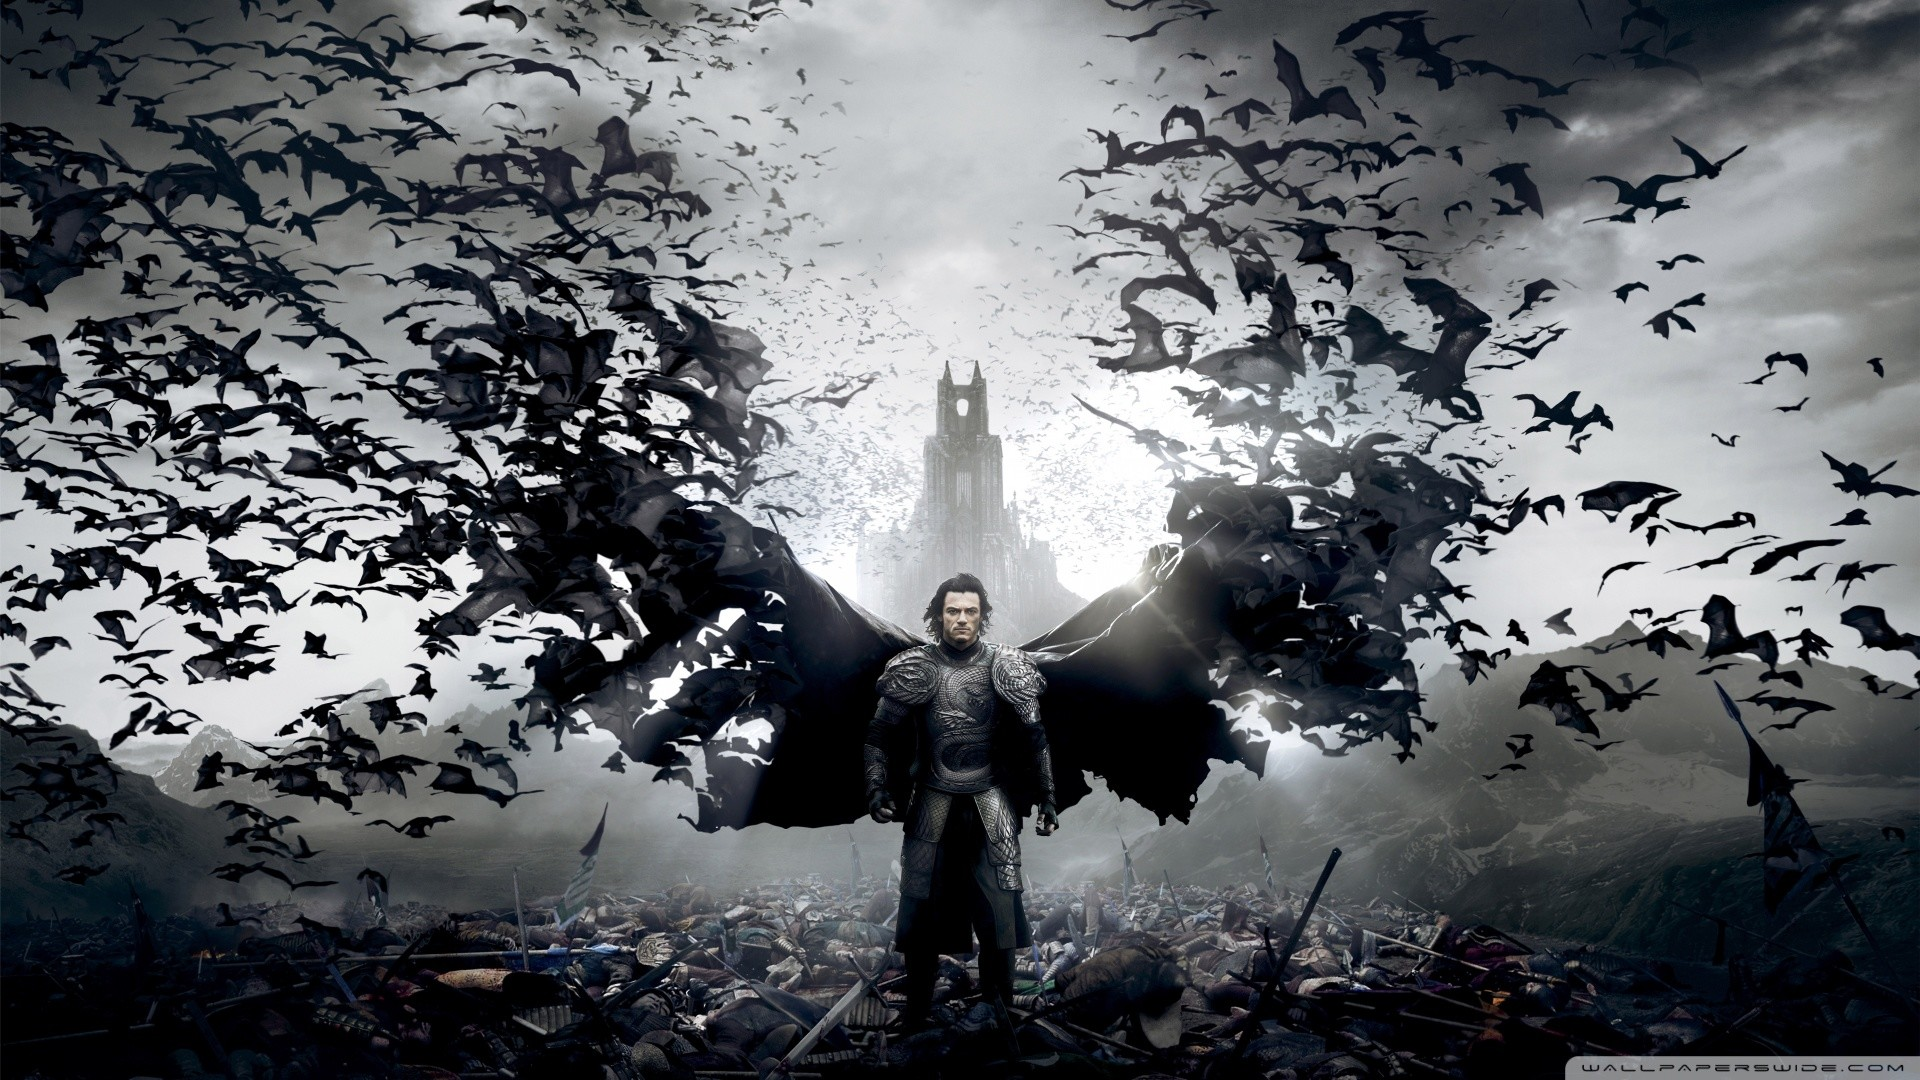 Best Action Movies 2014 ☆ Dracula Untold ☆ New Scary Movies English Sub.